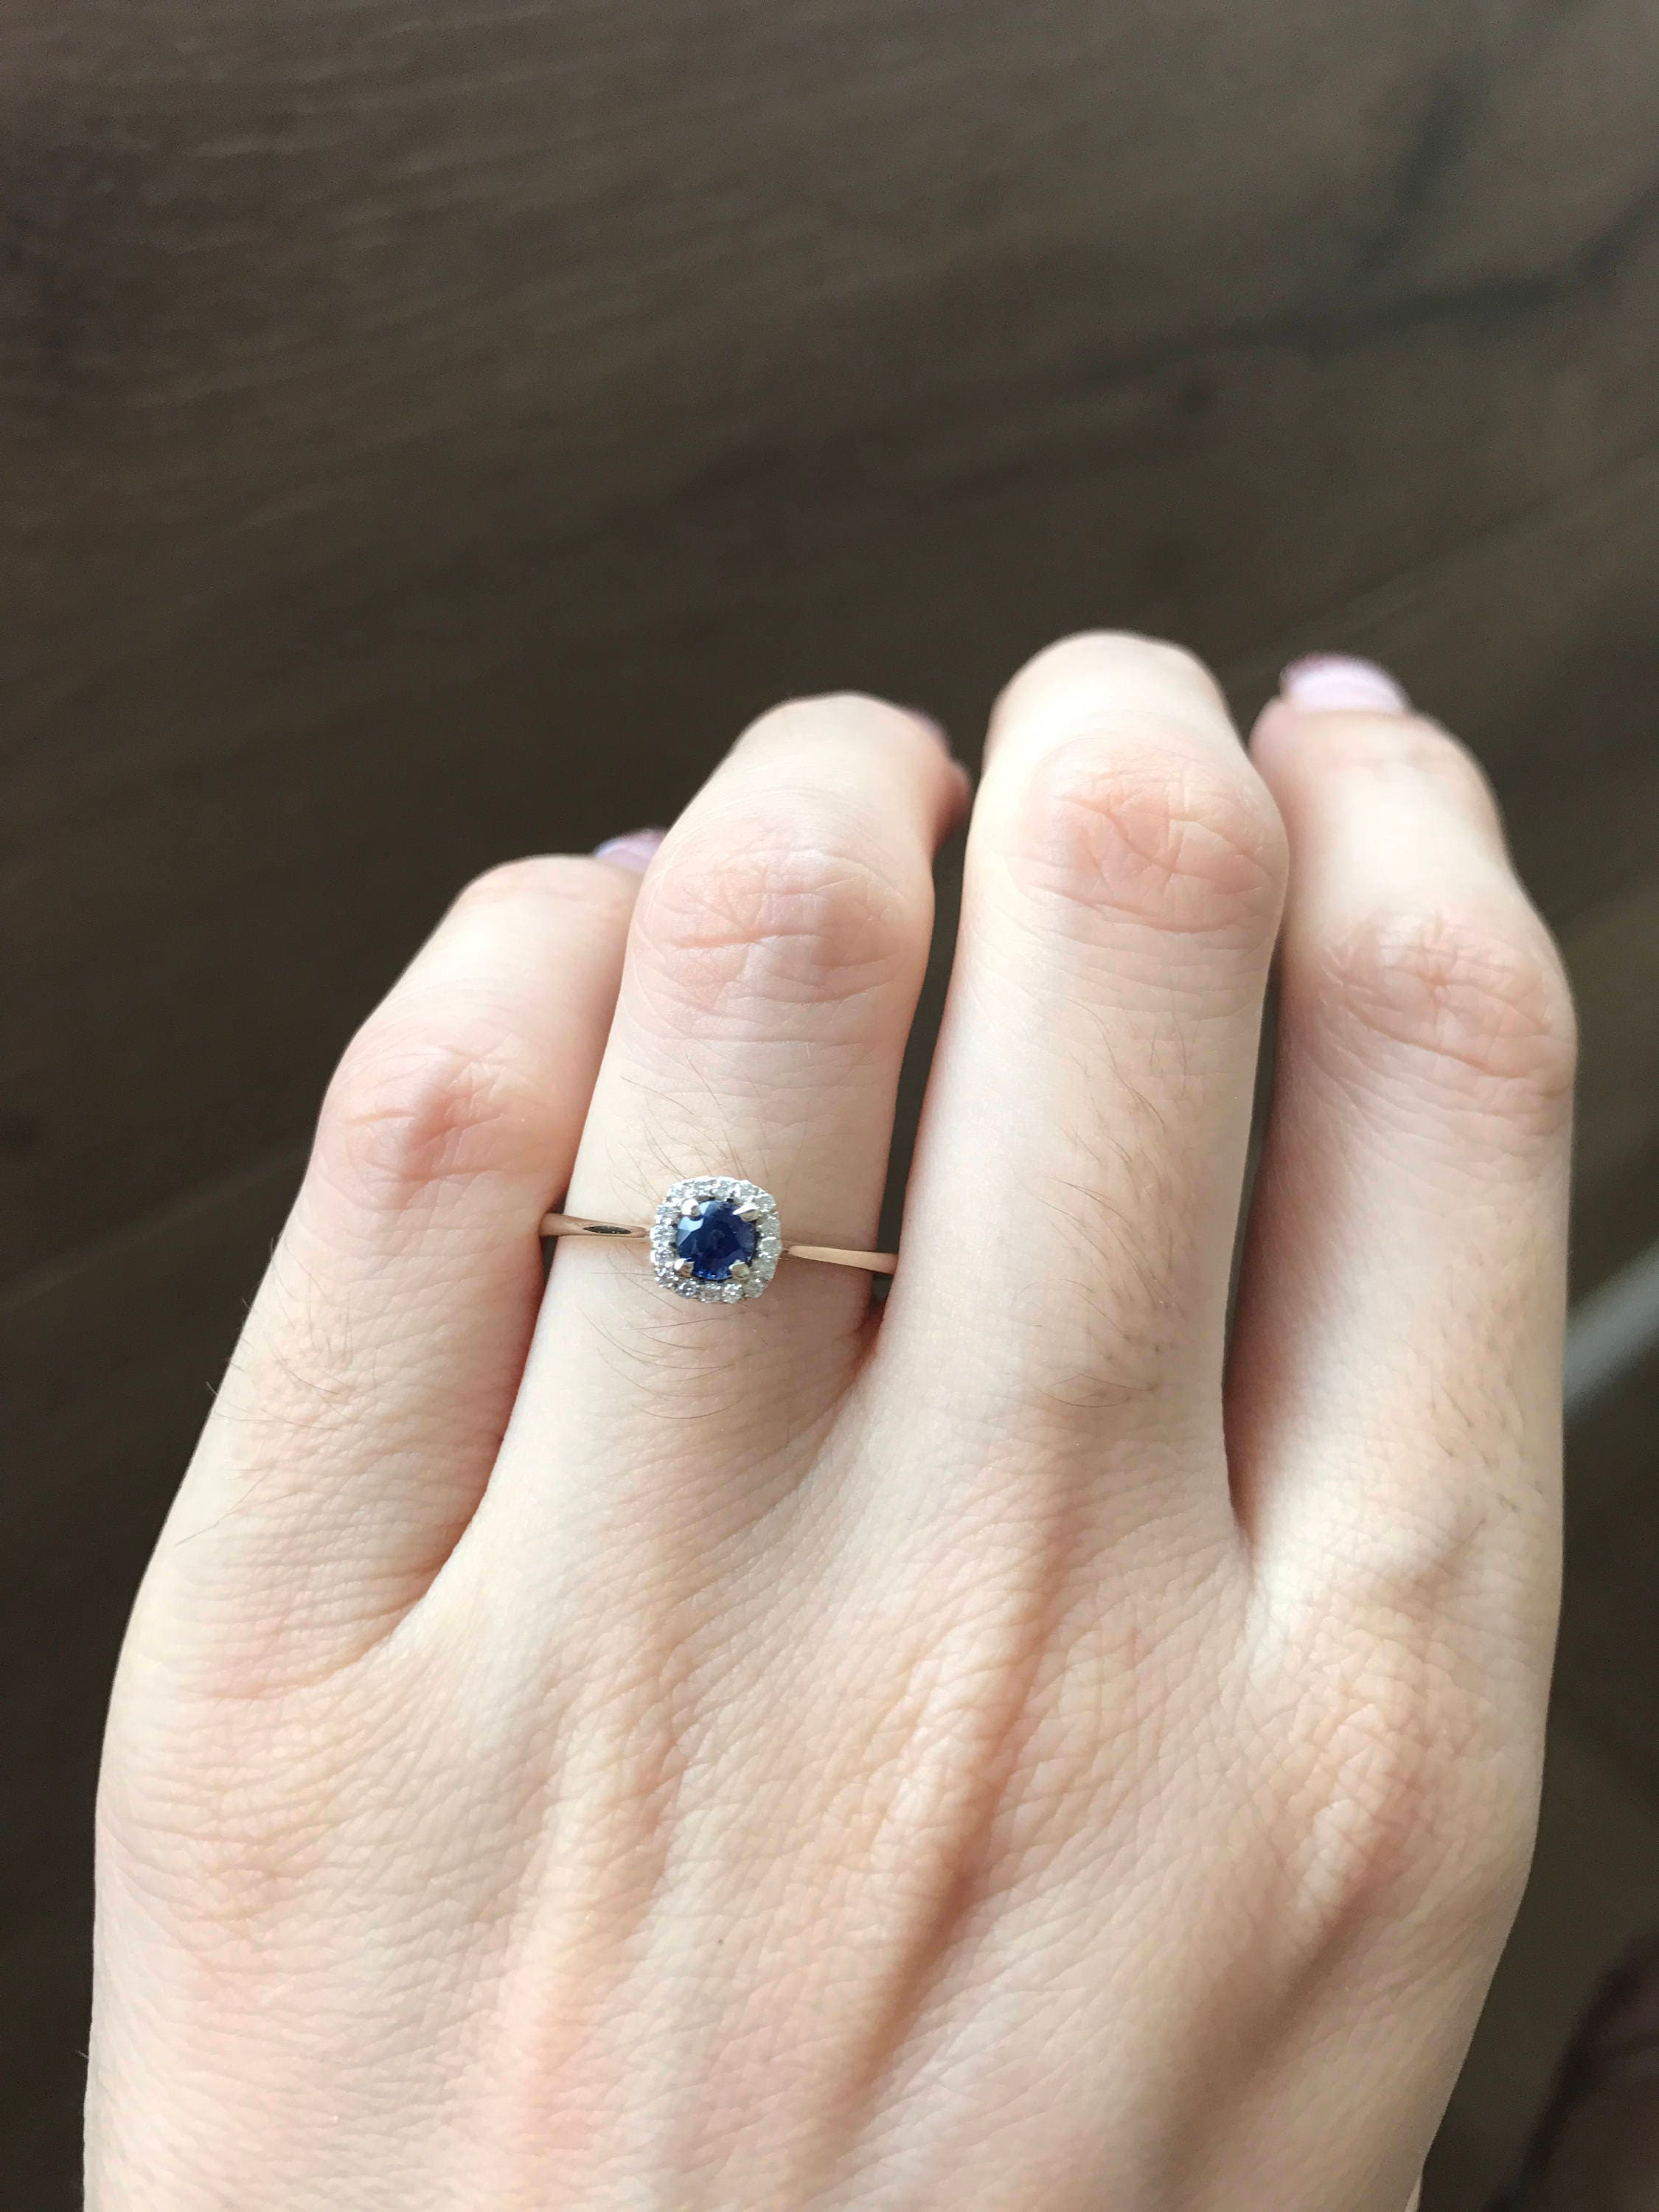 Simple Sapphire Enement Rings | Blue Sapphire Engagement Ring Dainty Sapphire Promise Ring Halo